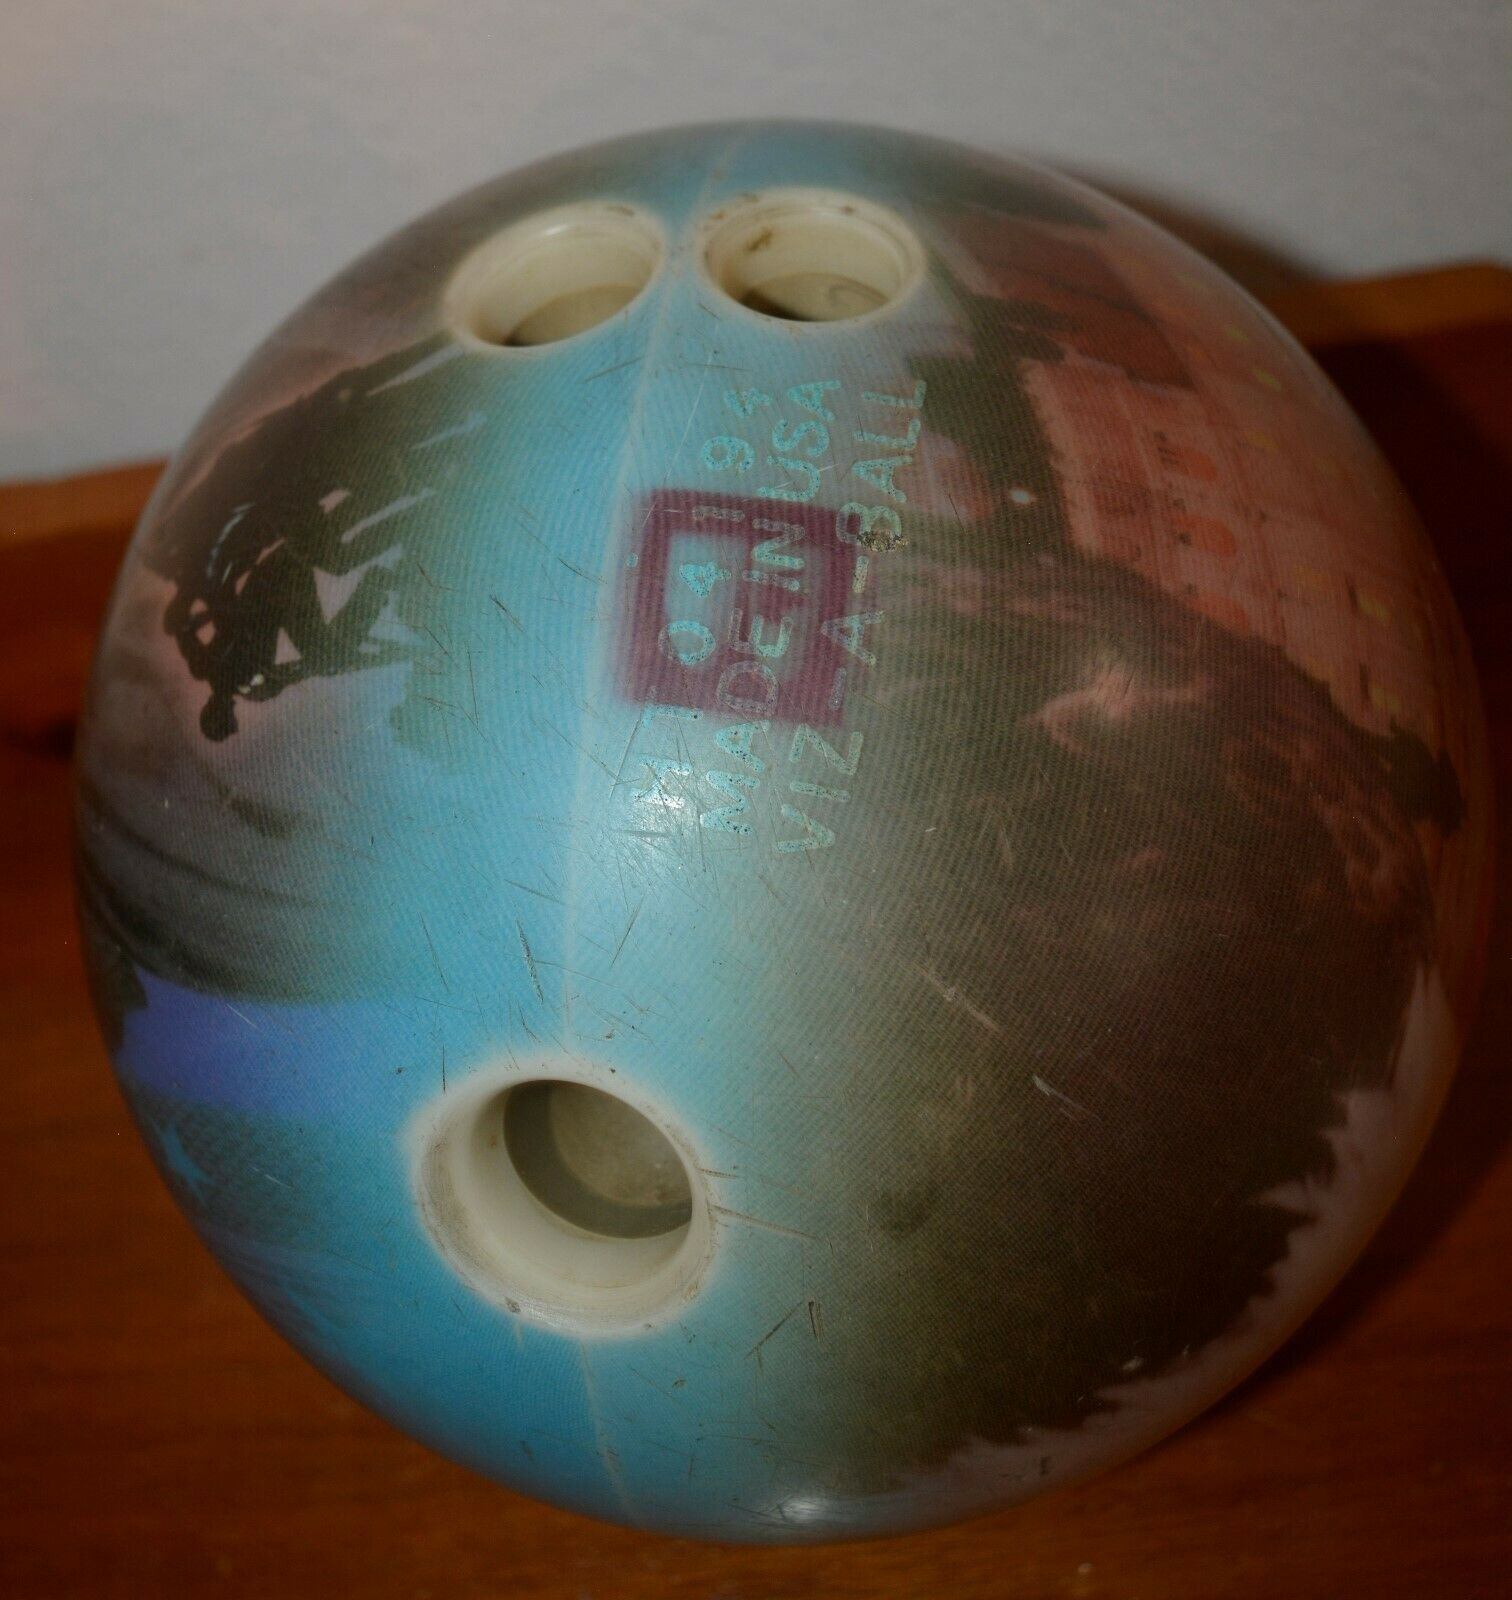 Primary image for HT04194 Made In The USA Viz-A-Ball Bowling Ball 15 lbs 11 oz used